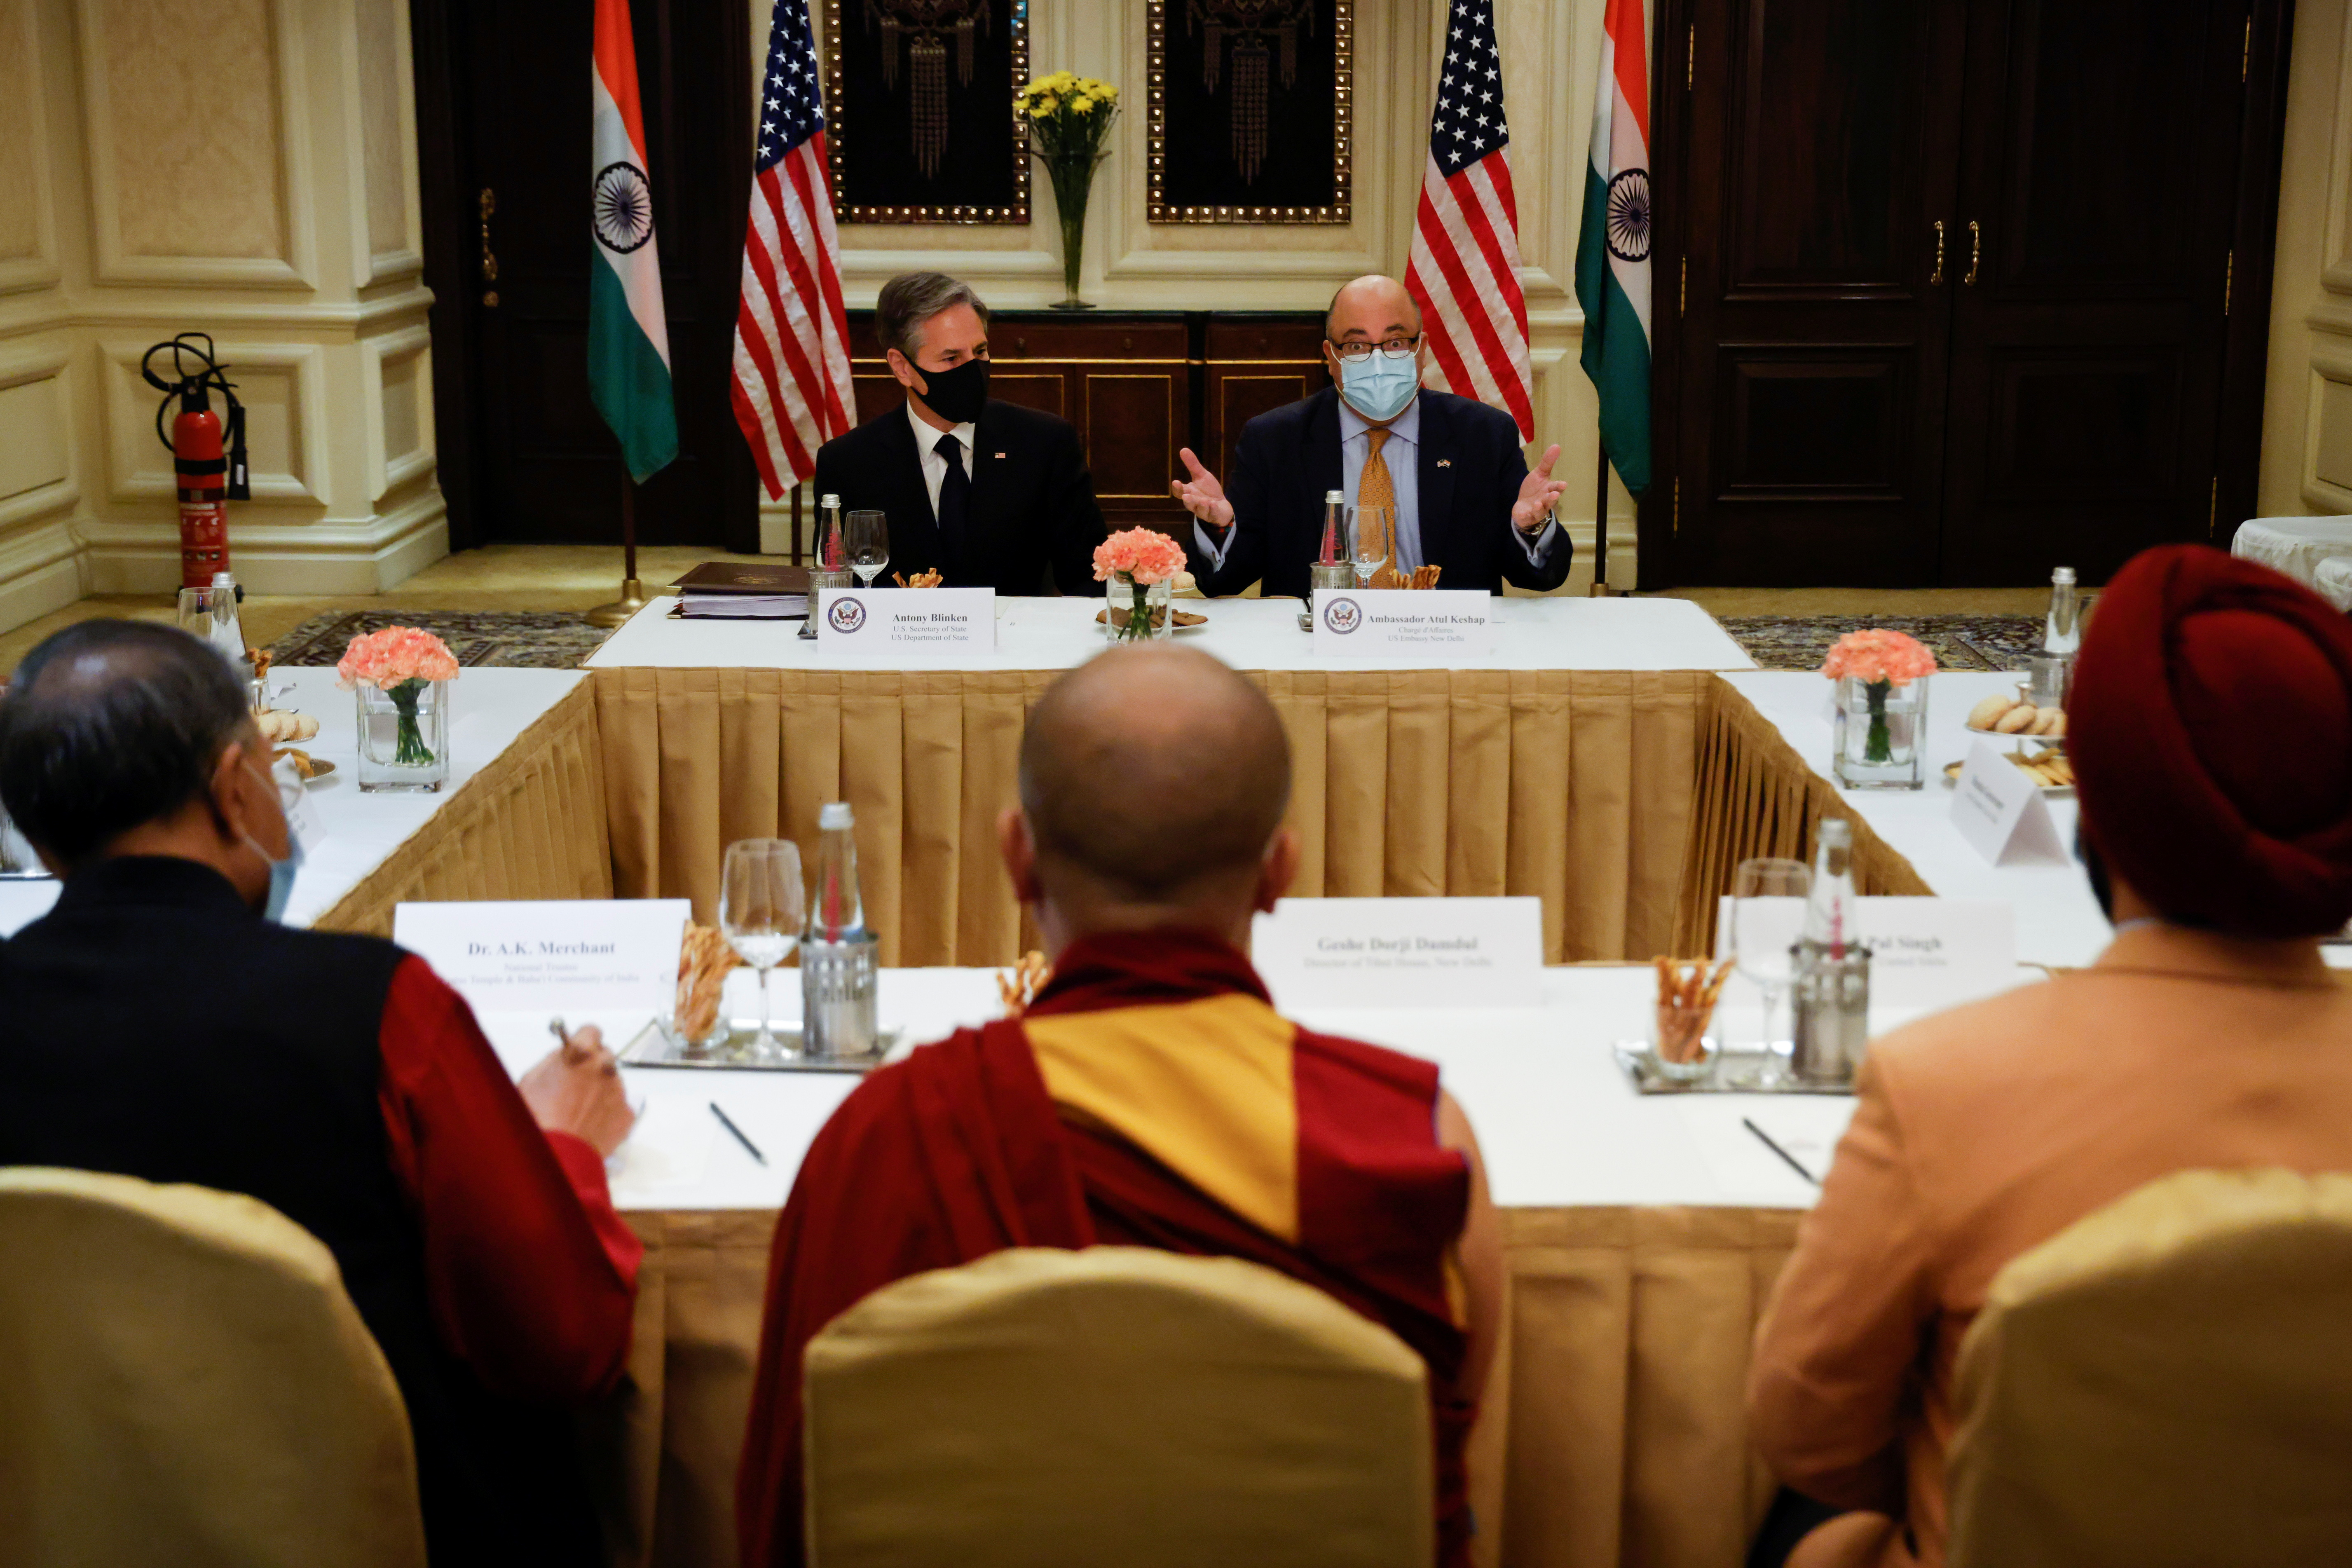 U.S. Secretary of State Antony Blinken and U.S. Ambassador to India Atul Keshap deliver remarks to civil society organization representatives in a meeting room at the Leela Palace Hotel in New Delhi, India, July 28, 2021. REUTERS/Jonathan Ernst